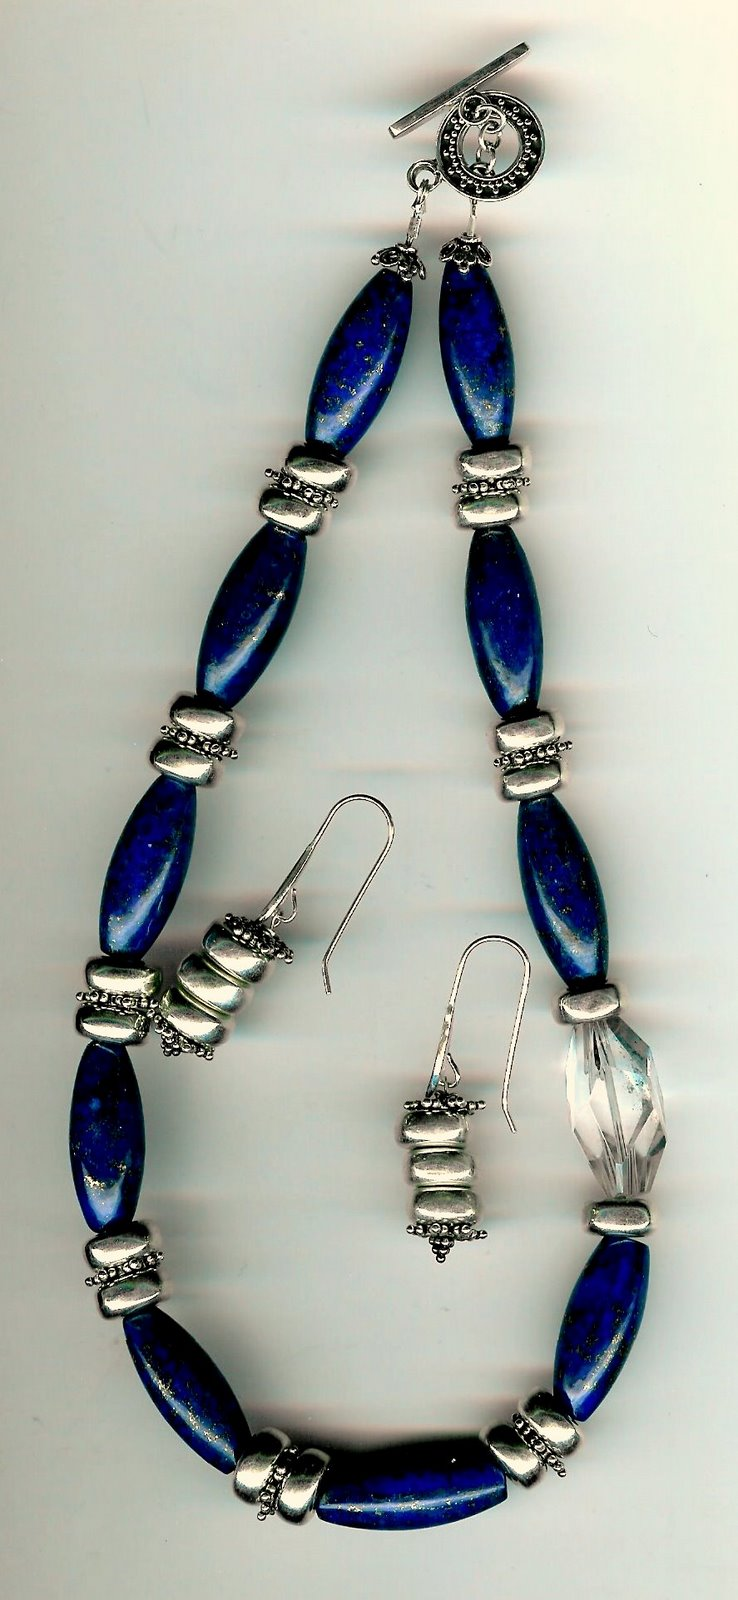 97. Lapis Lazuli, Crystal with Bali Sterling Silver